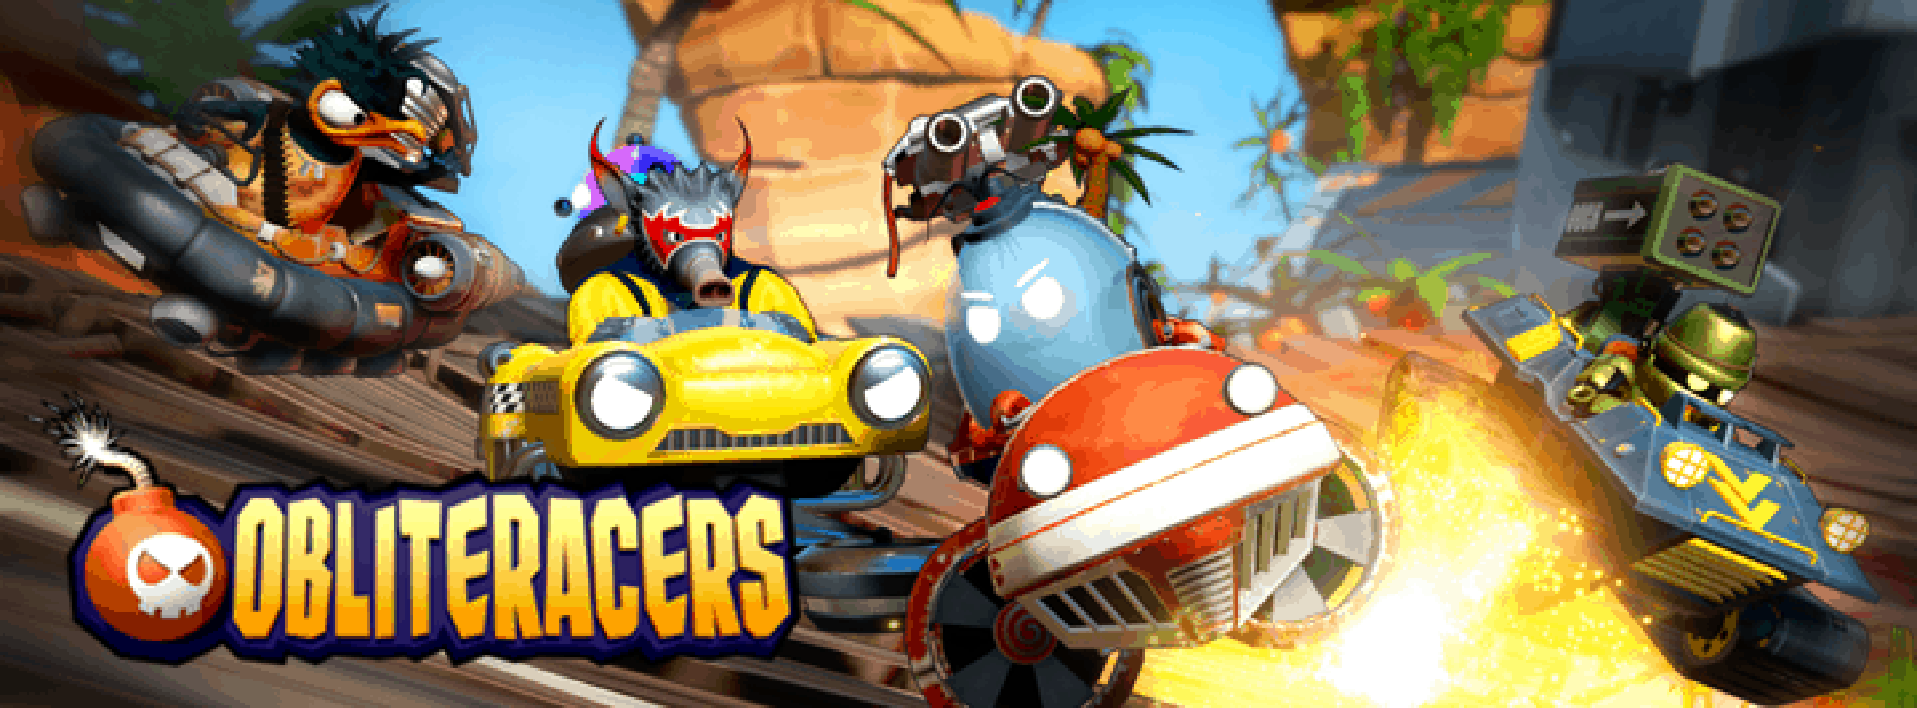 'Obliteracers' Review: Living Life in the Fast Lane